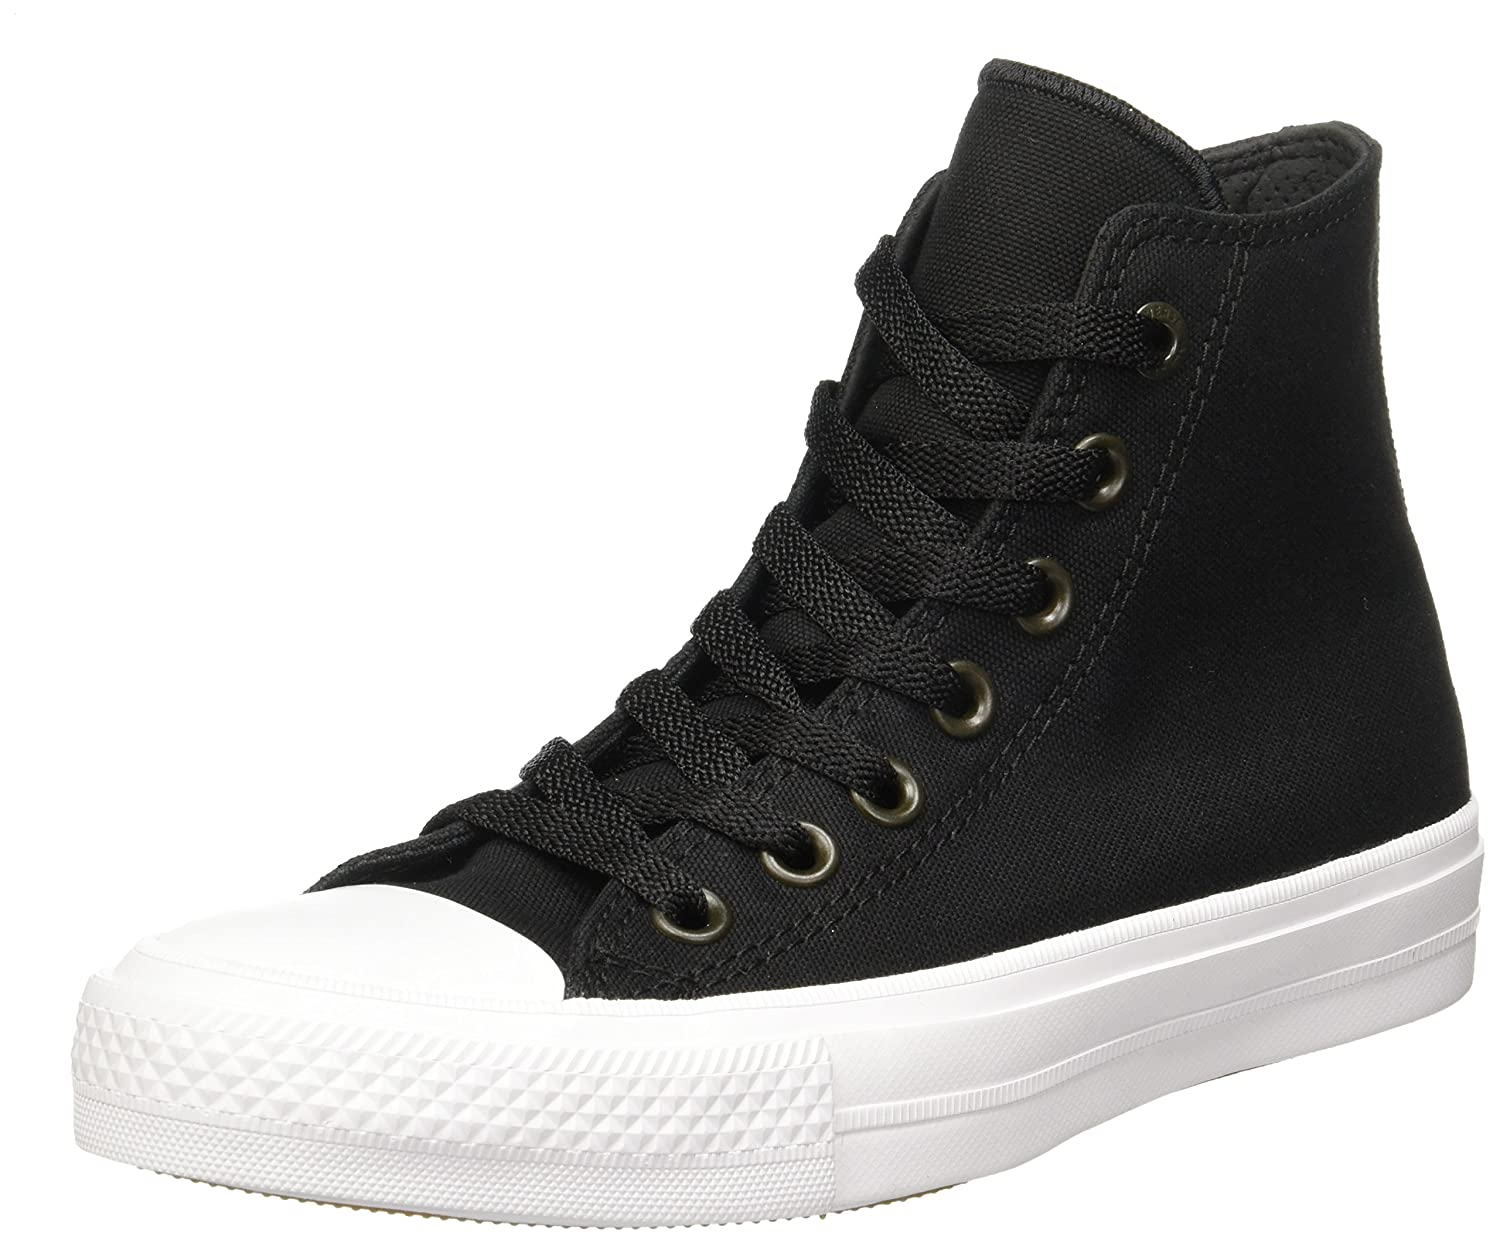 2ce33c021ba1f Converse Chuck Taylor All Star II Blk Wht Men 10.5 M US Wm 12.5 M US Black/ Black 7.5 B(M) US Women / 5.5 D(M) US Men: Buy Online at Low Prices in ...